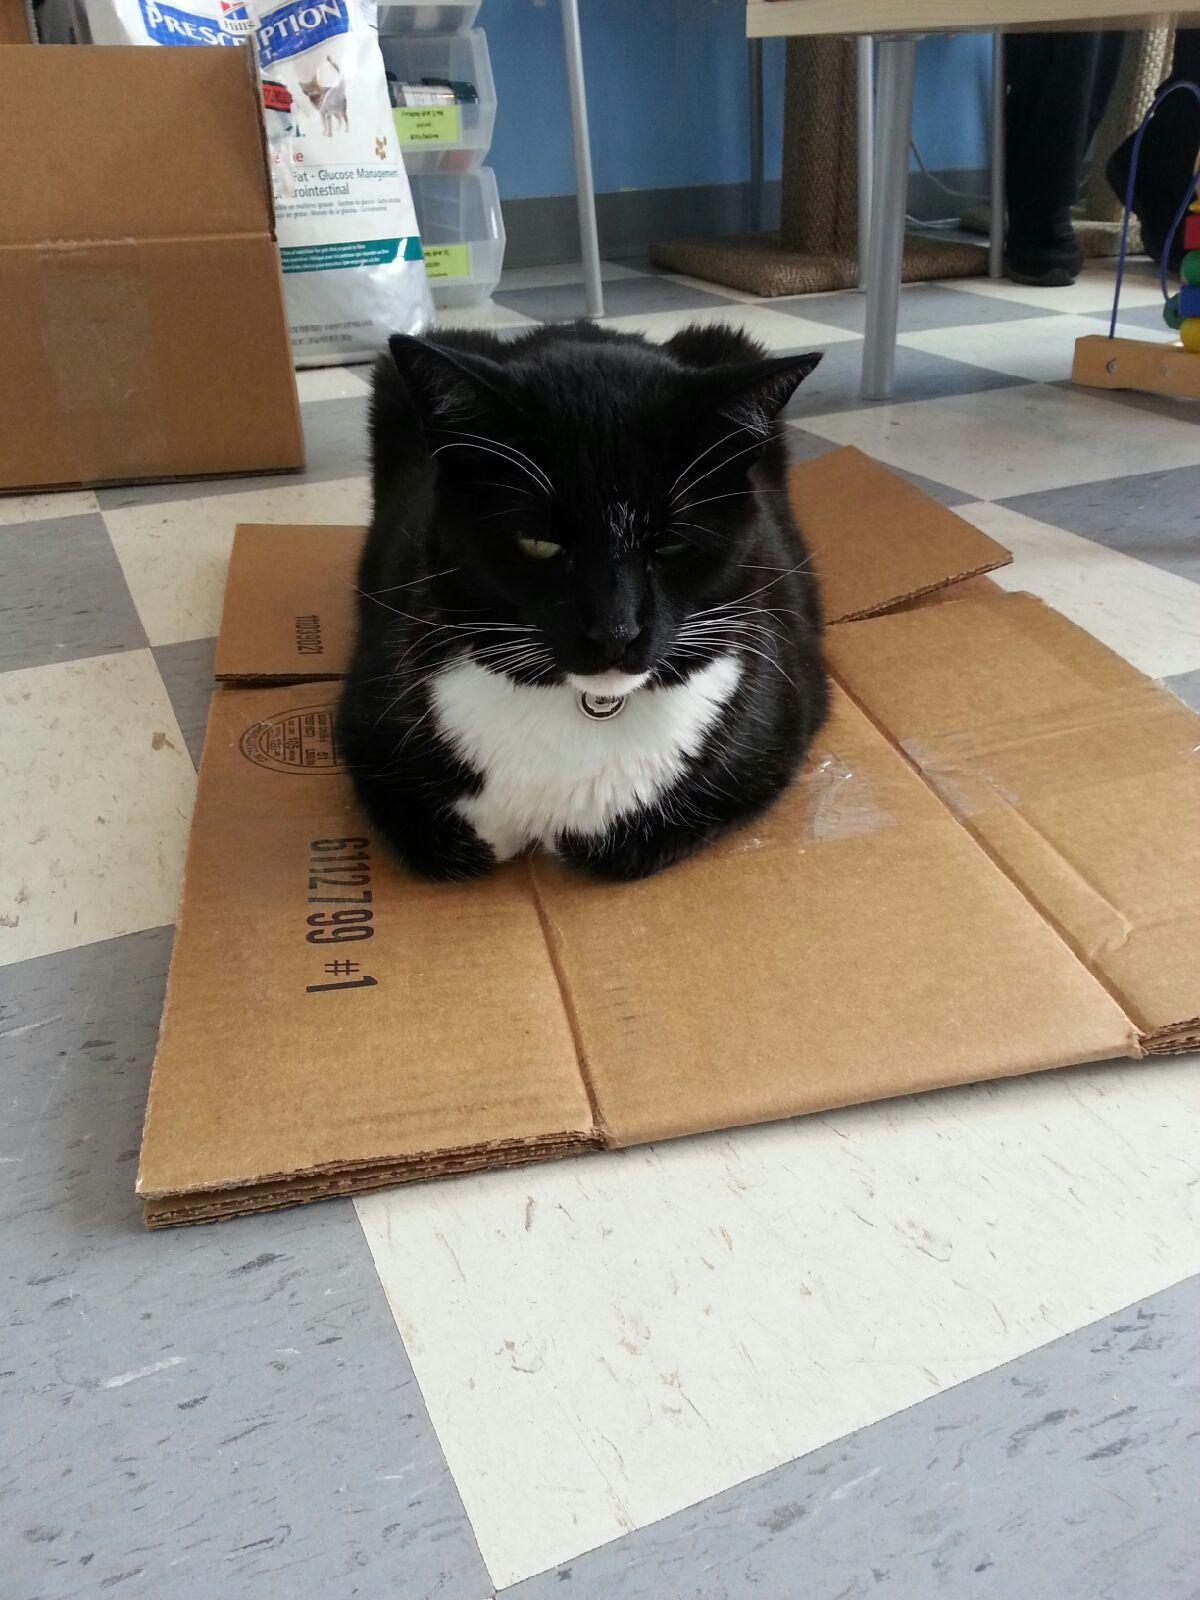 Squashed boxes are a okay too!